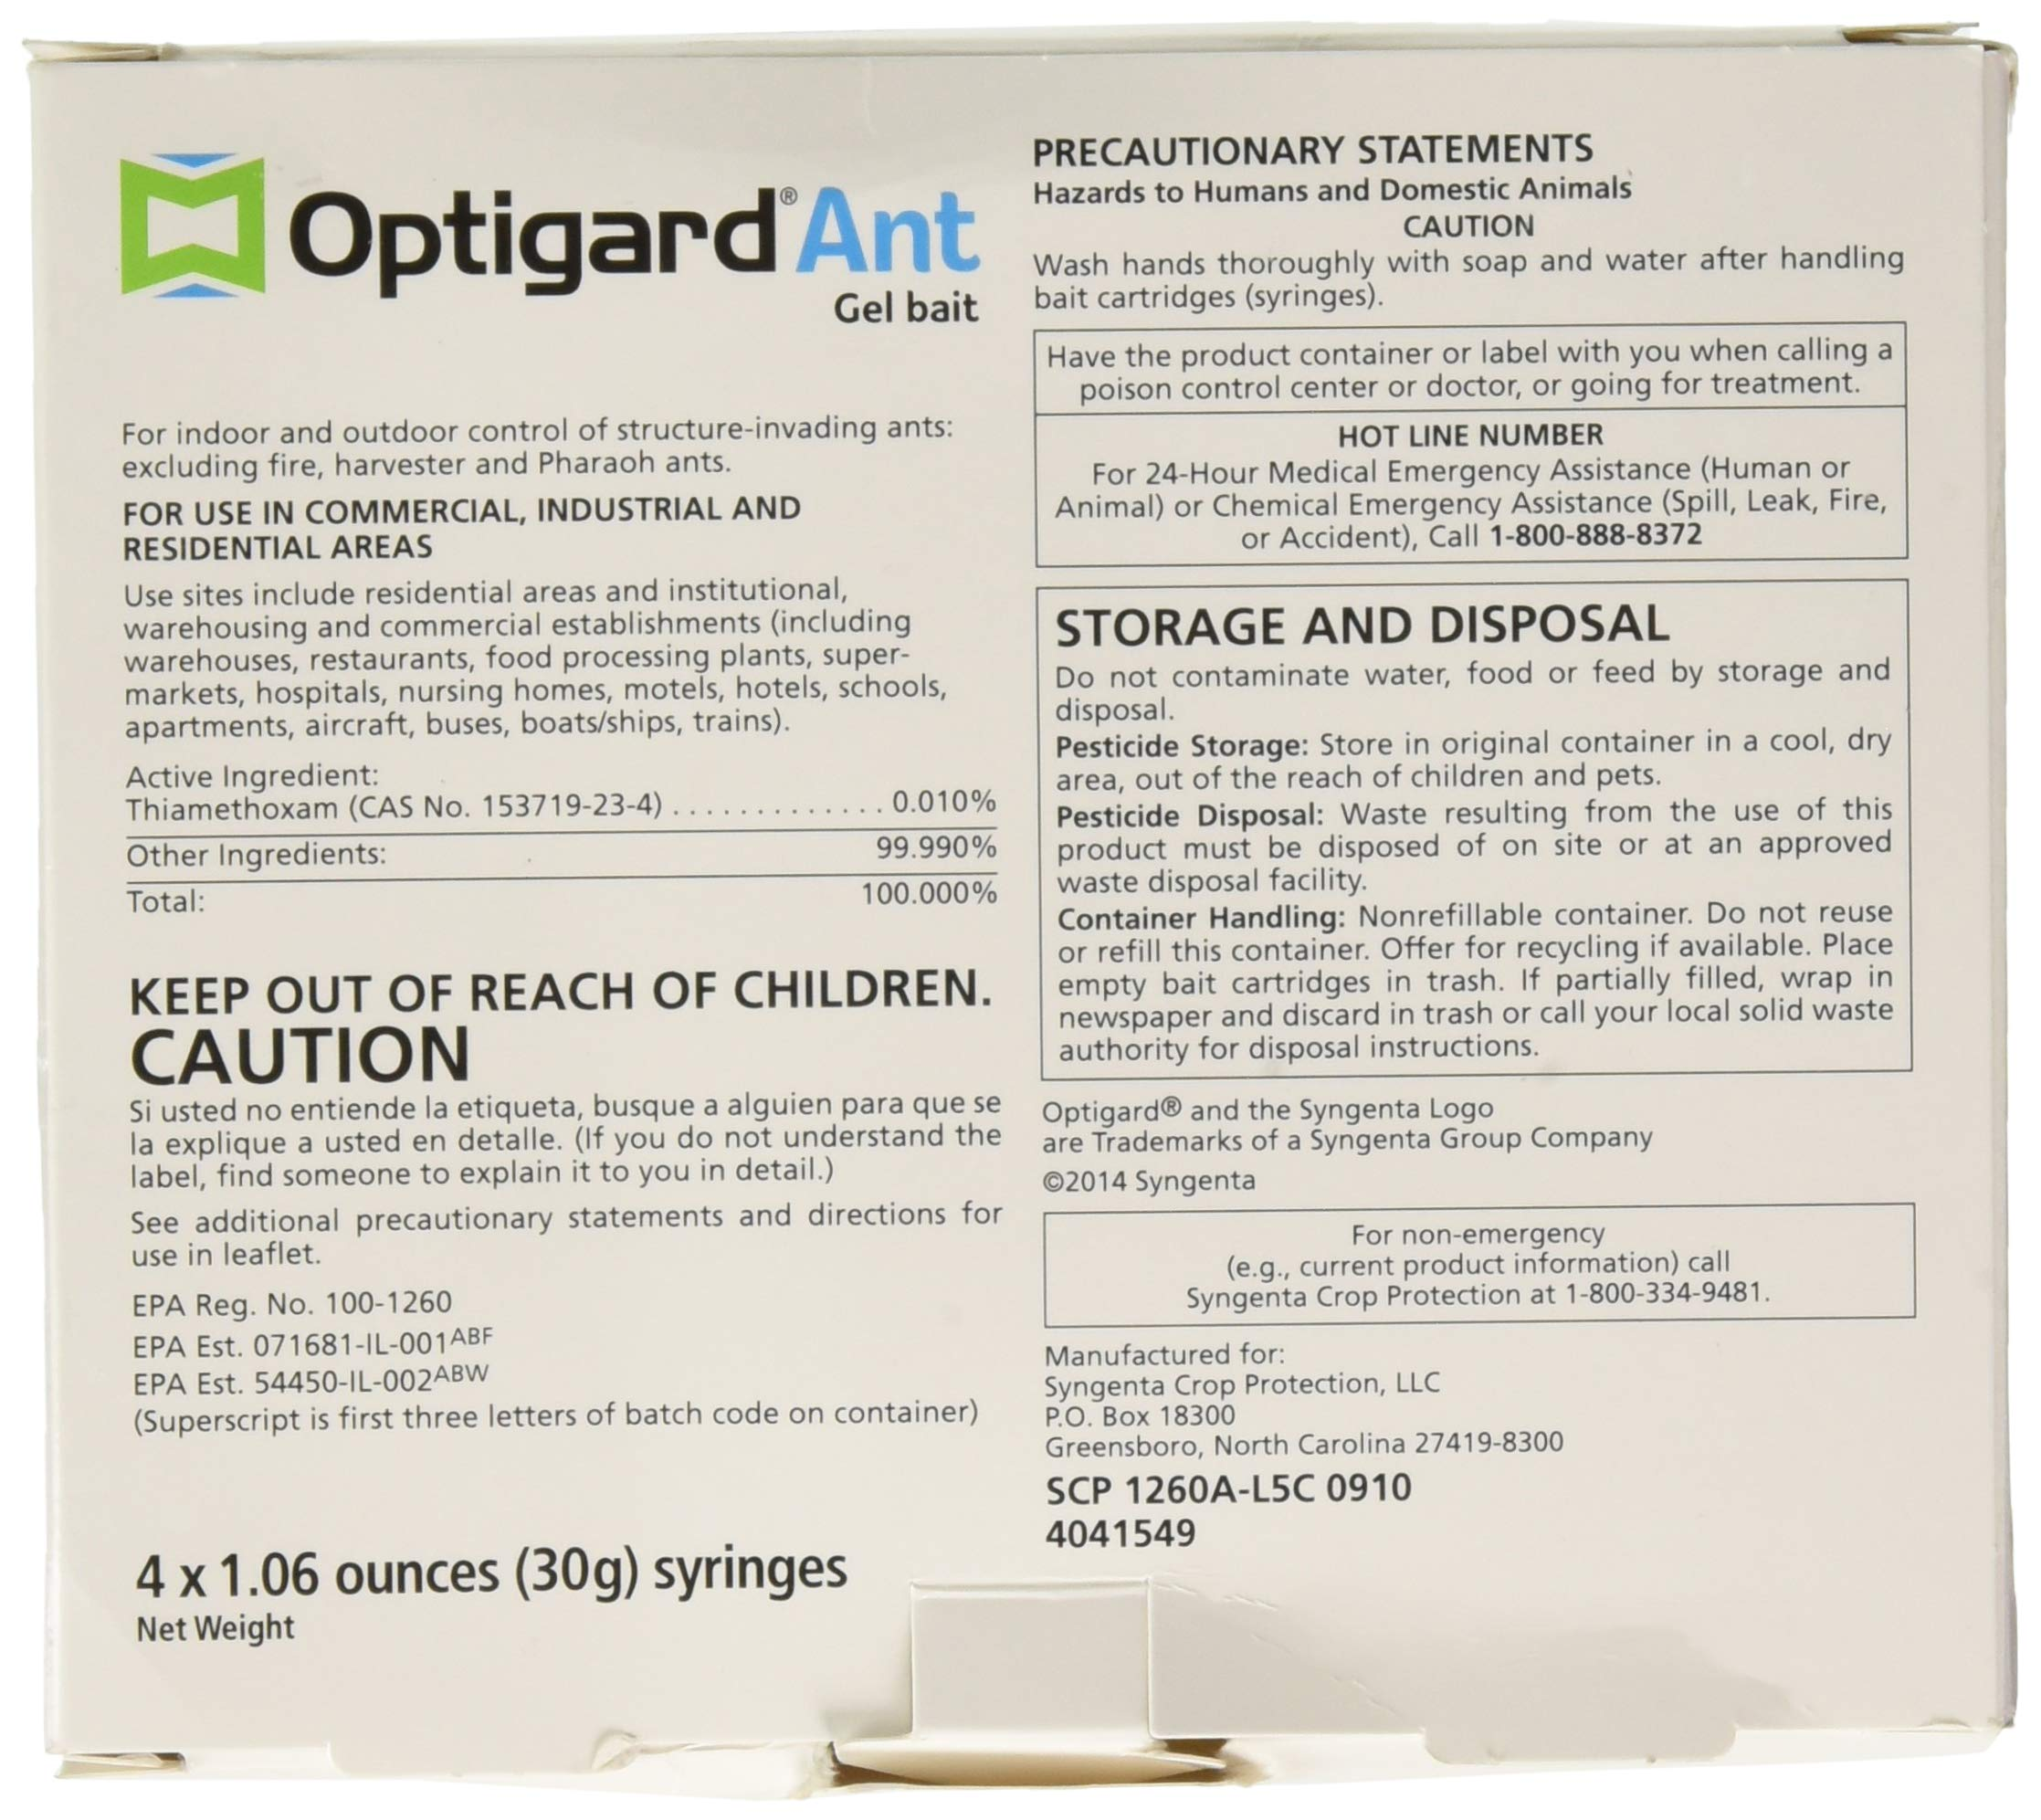 Syngenta - TRTD11568 - Optigard Ant Bait Gel Box - 4 Tubes w/ Plunger - 30g each tube 3 Target pests: For indoor and outdoor control of structure-invading ants including argentine ants, carpenter ants, and ghost ants and other nuisance ant pests; excluding fire, harvester and pharaoh ants. Highly attractive formula promotes ready transfer of the active ingredient throughout the colony Powerful, active ingredient knocks out workers, brood and queens